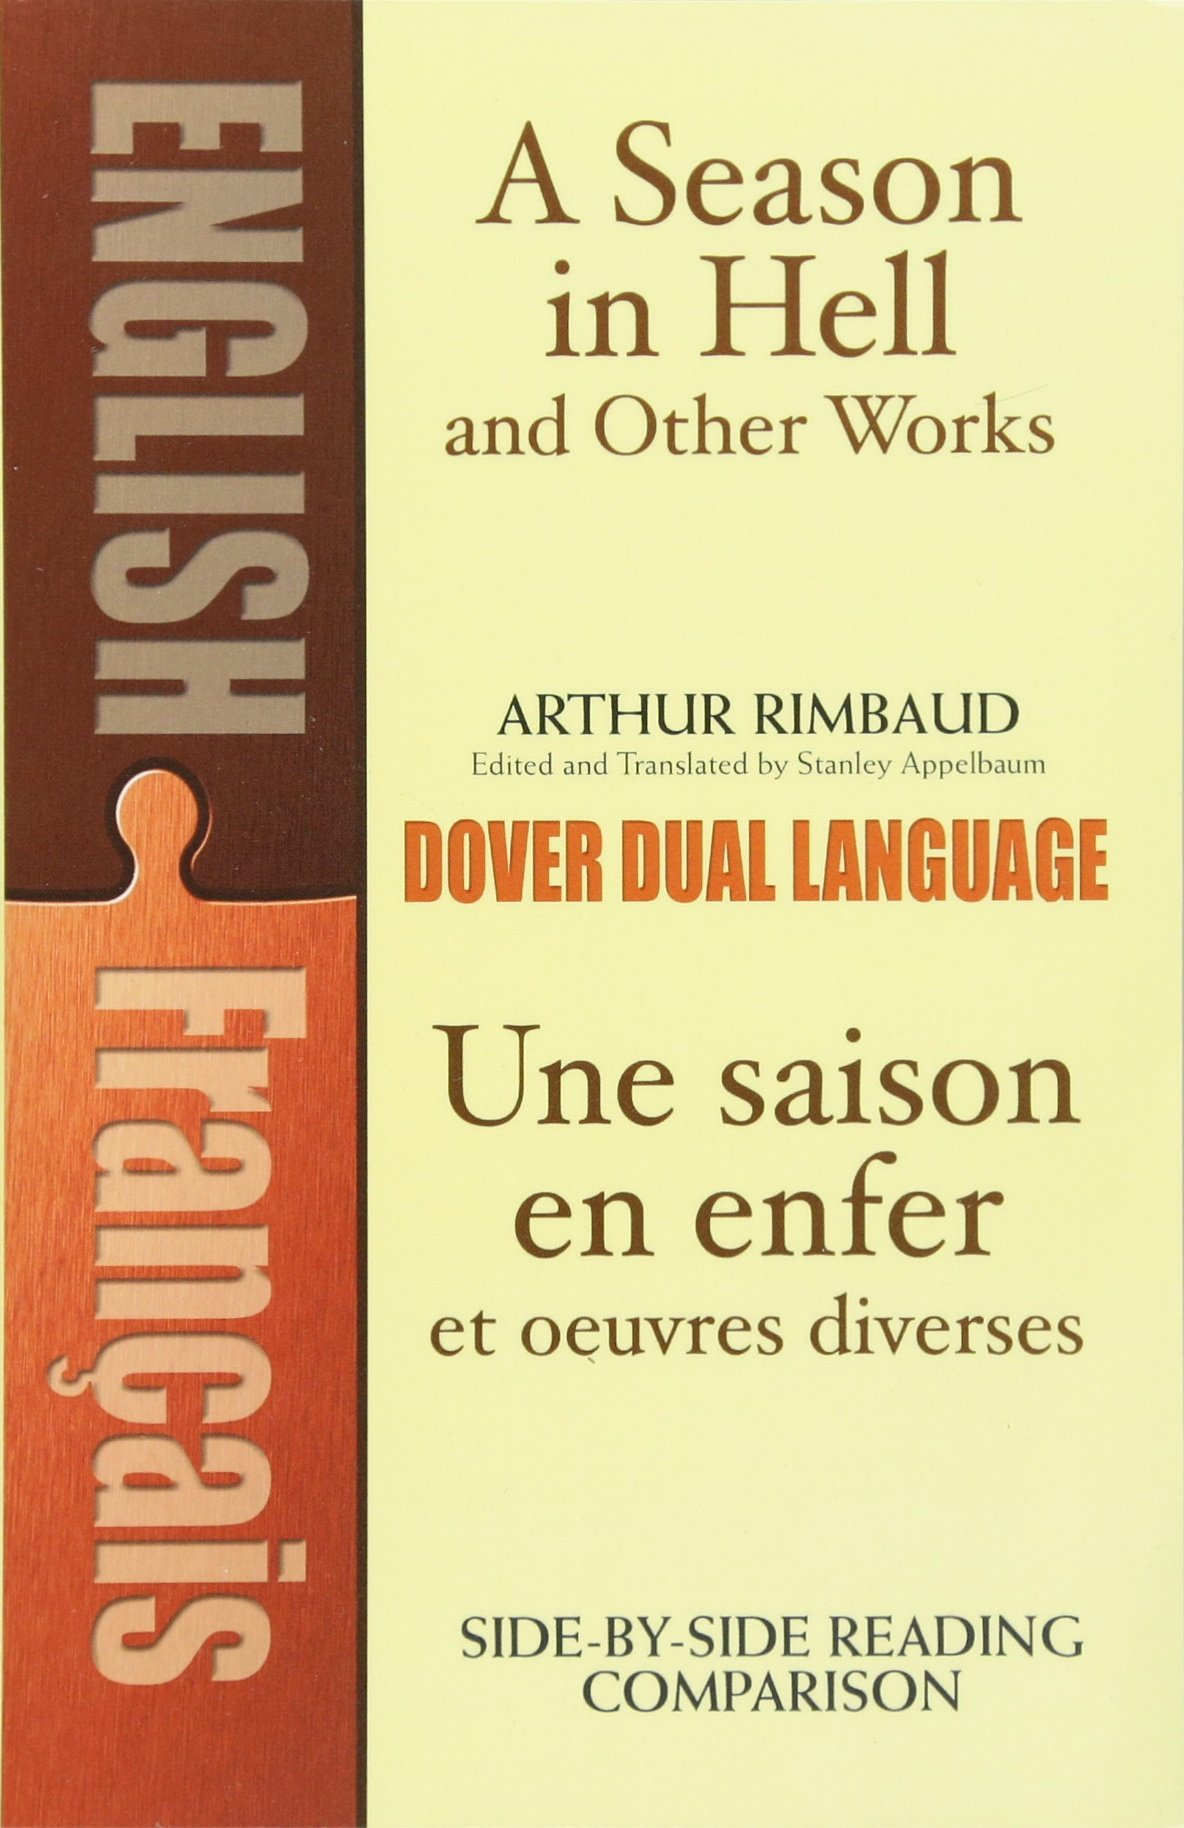 A Season in Hell and Other Works/Une saison en enfer et oeuvres diverses (Dover Dual Language French) (English and French Edition) by Dover Publications